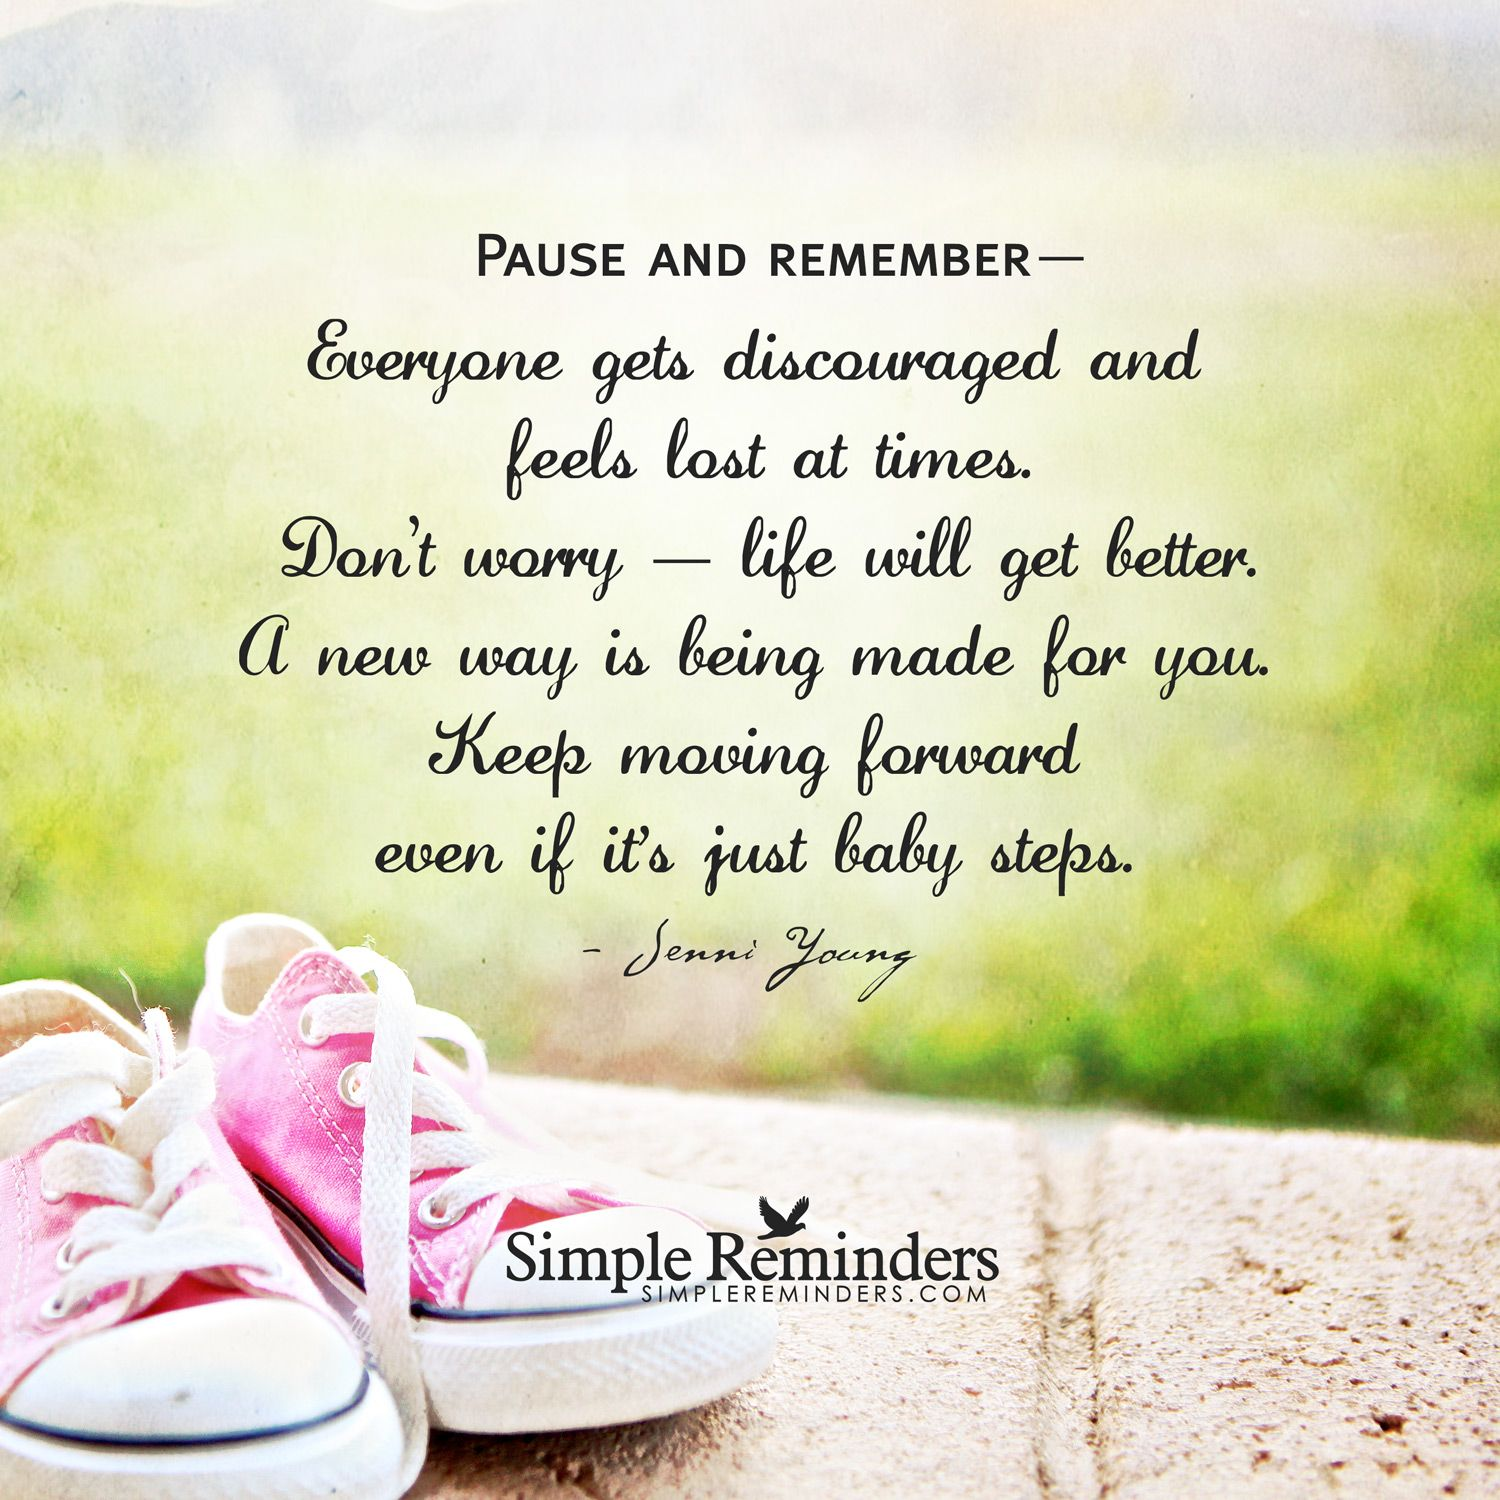 Motivational Inspirational Quotes: Pause And Remember— Everyone Gets Discouraged And Feels